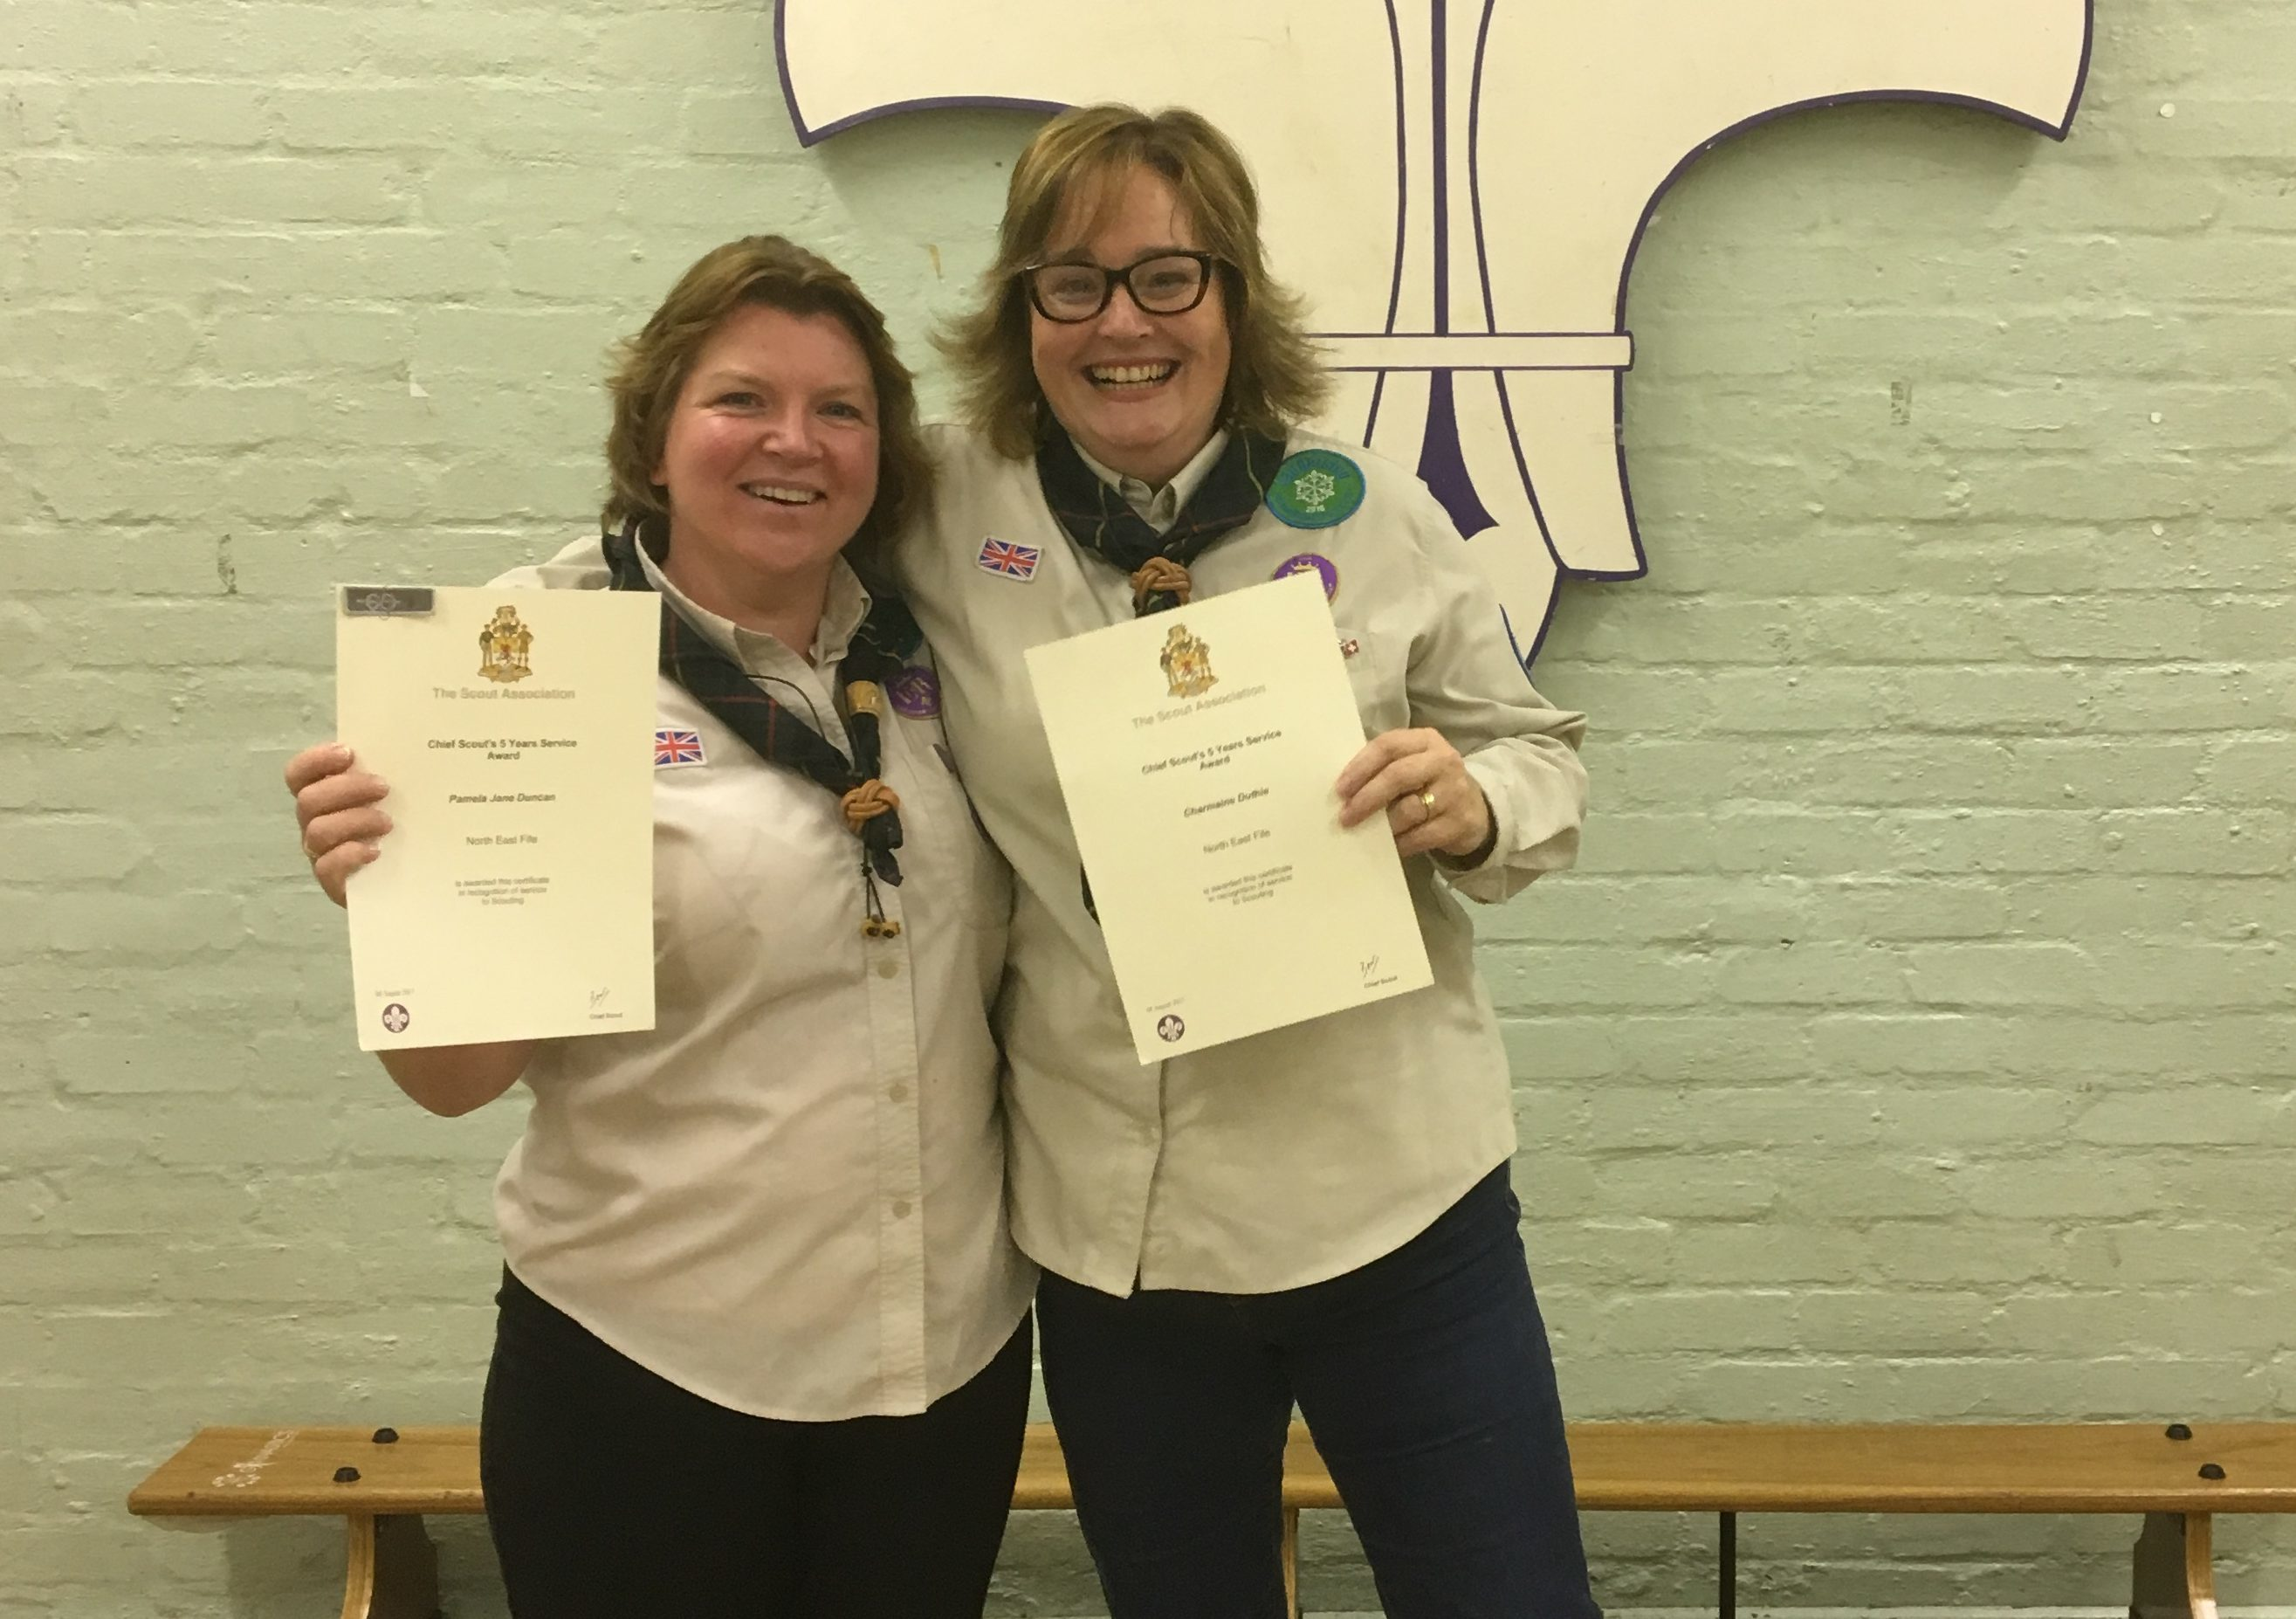 Charmaine Duthie (right) with fellow Scout leader Pam Duncan